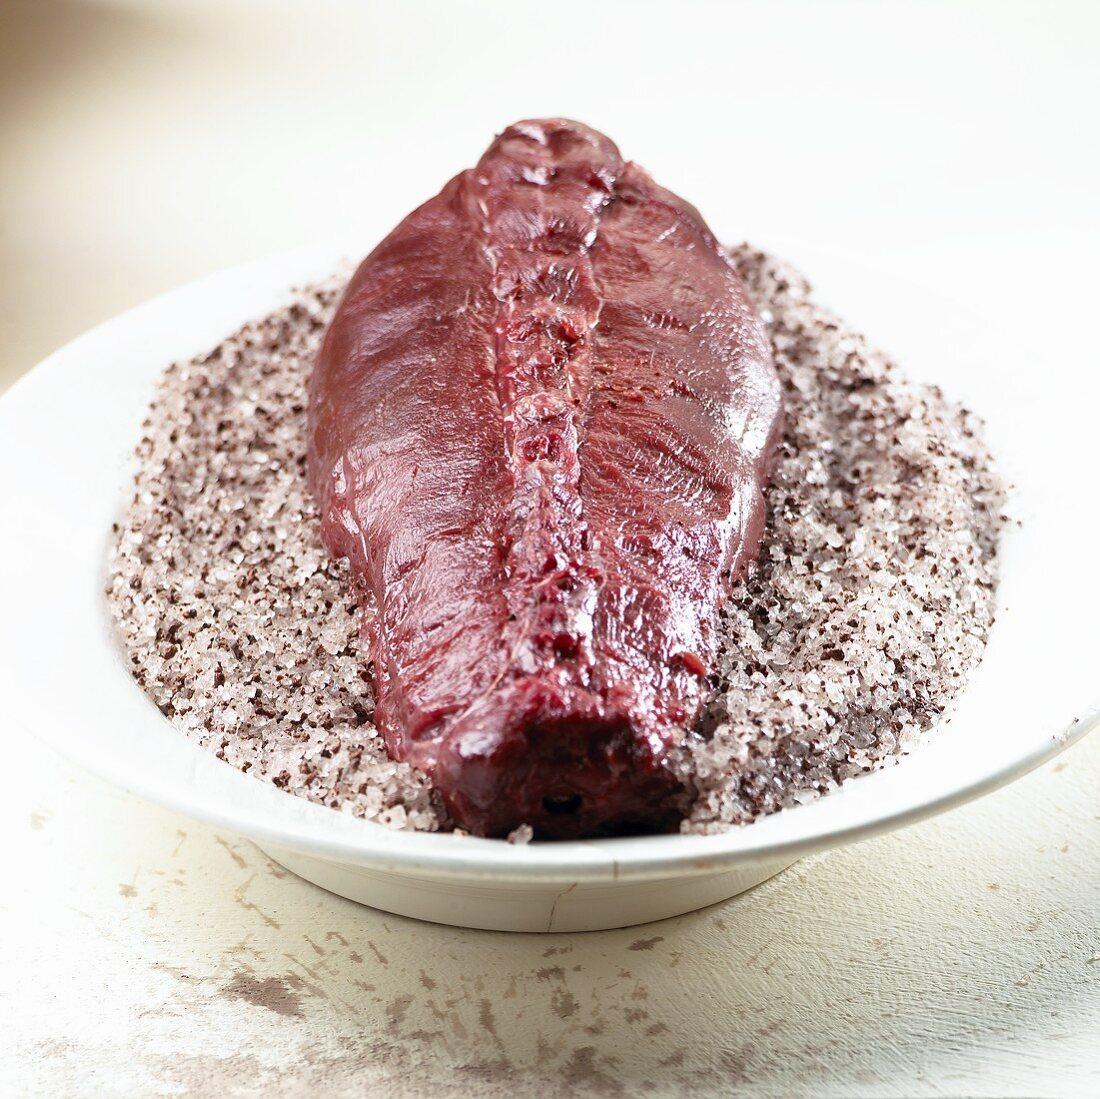 Saddle of hare in salt